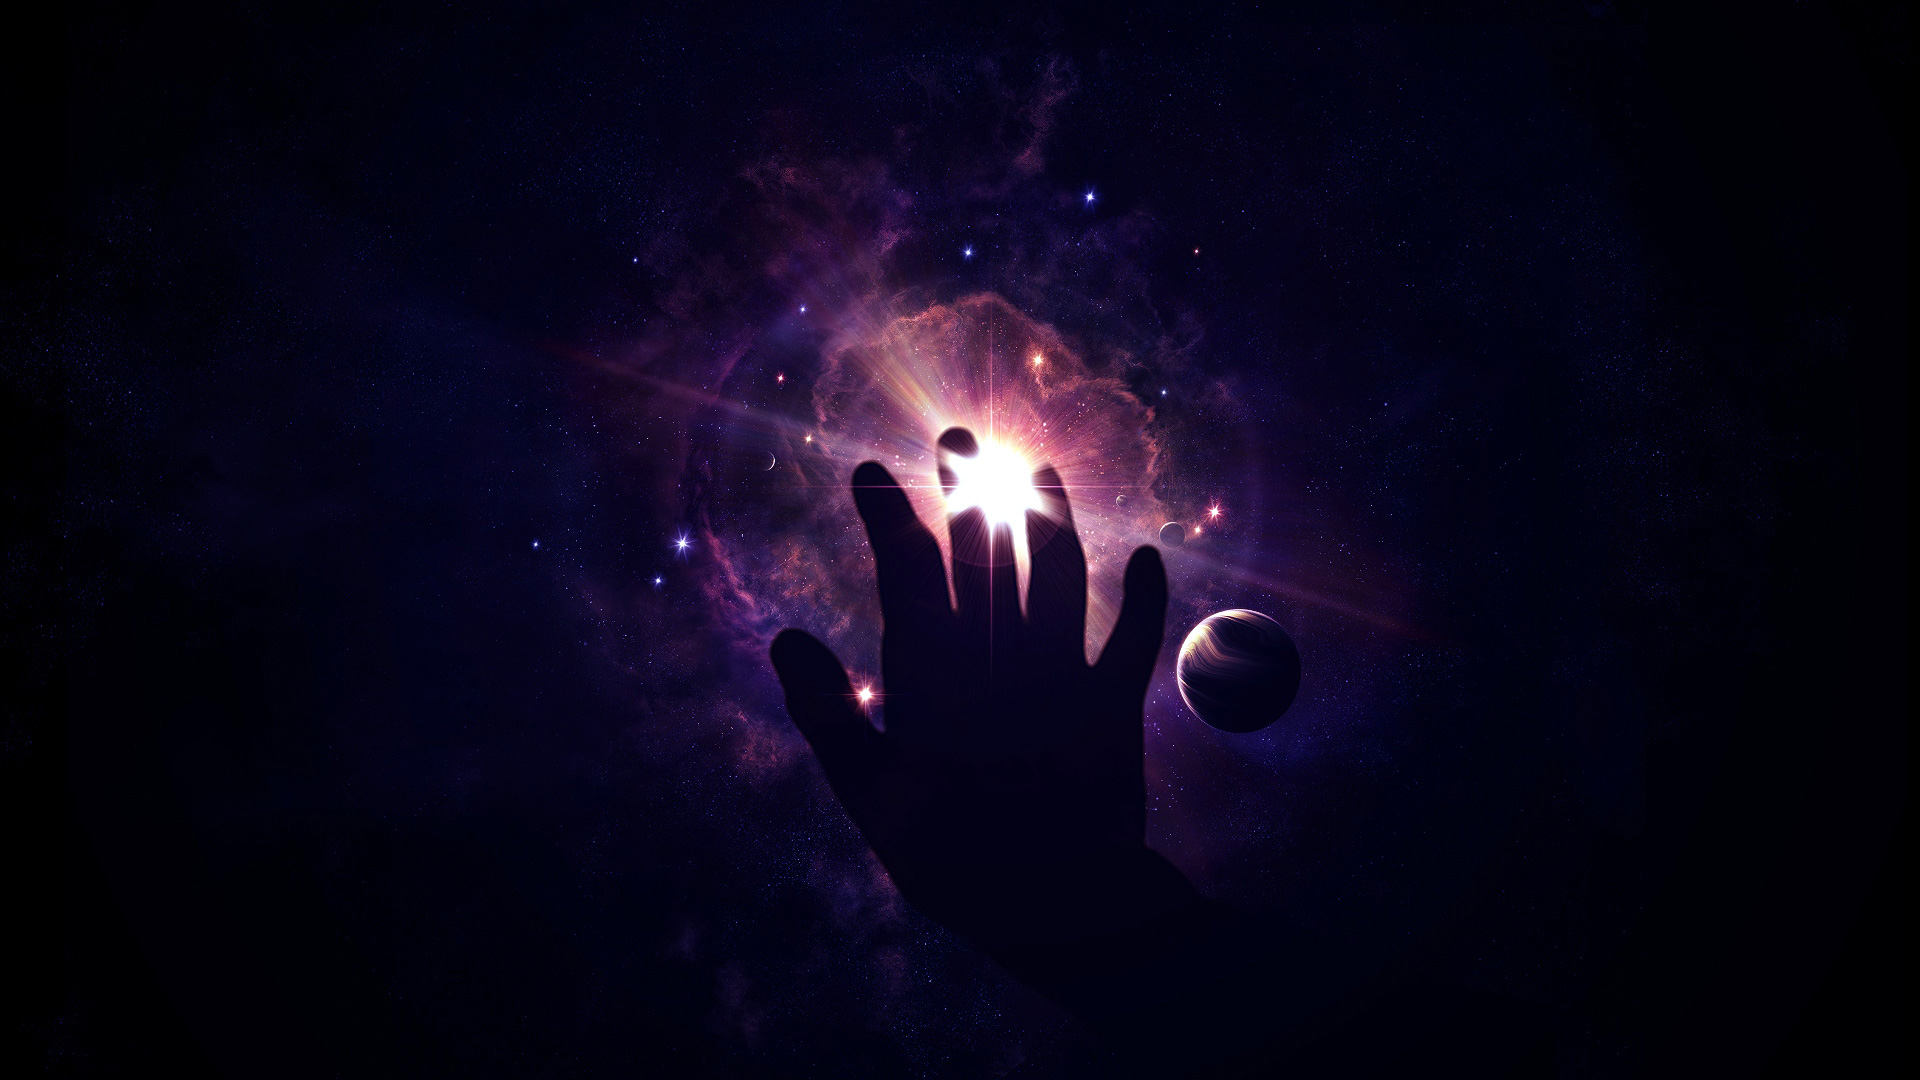 Can You Touch The Galaxy Hd Wallpaper Background Image